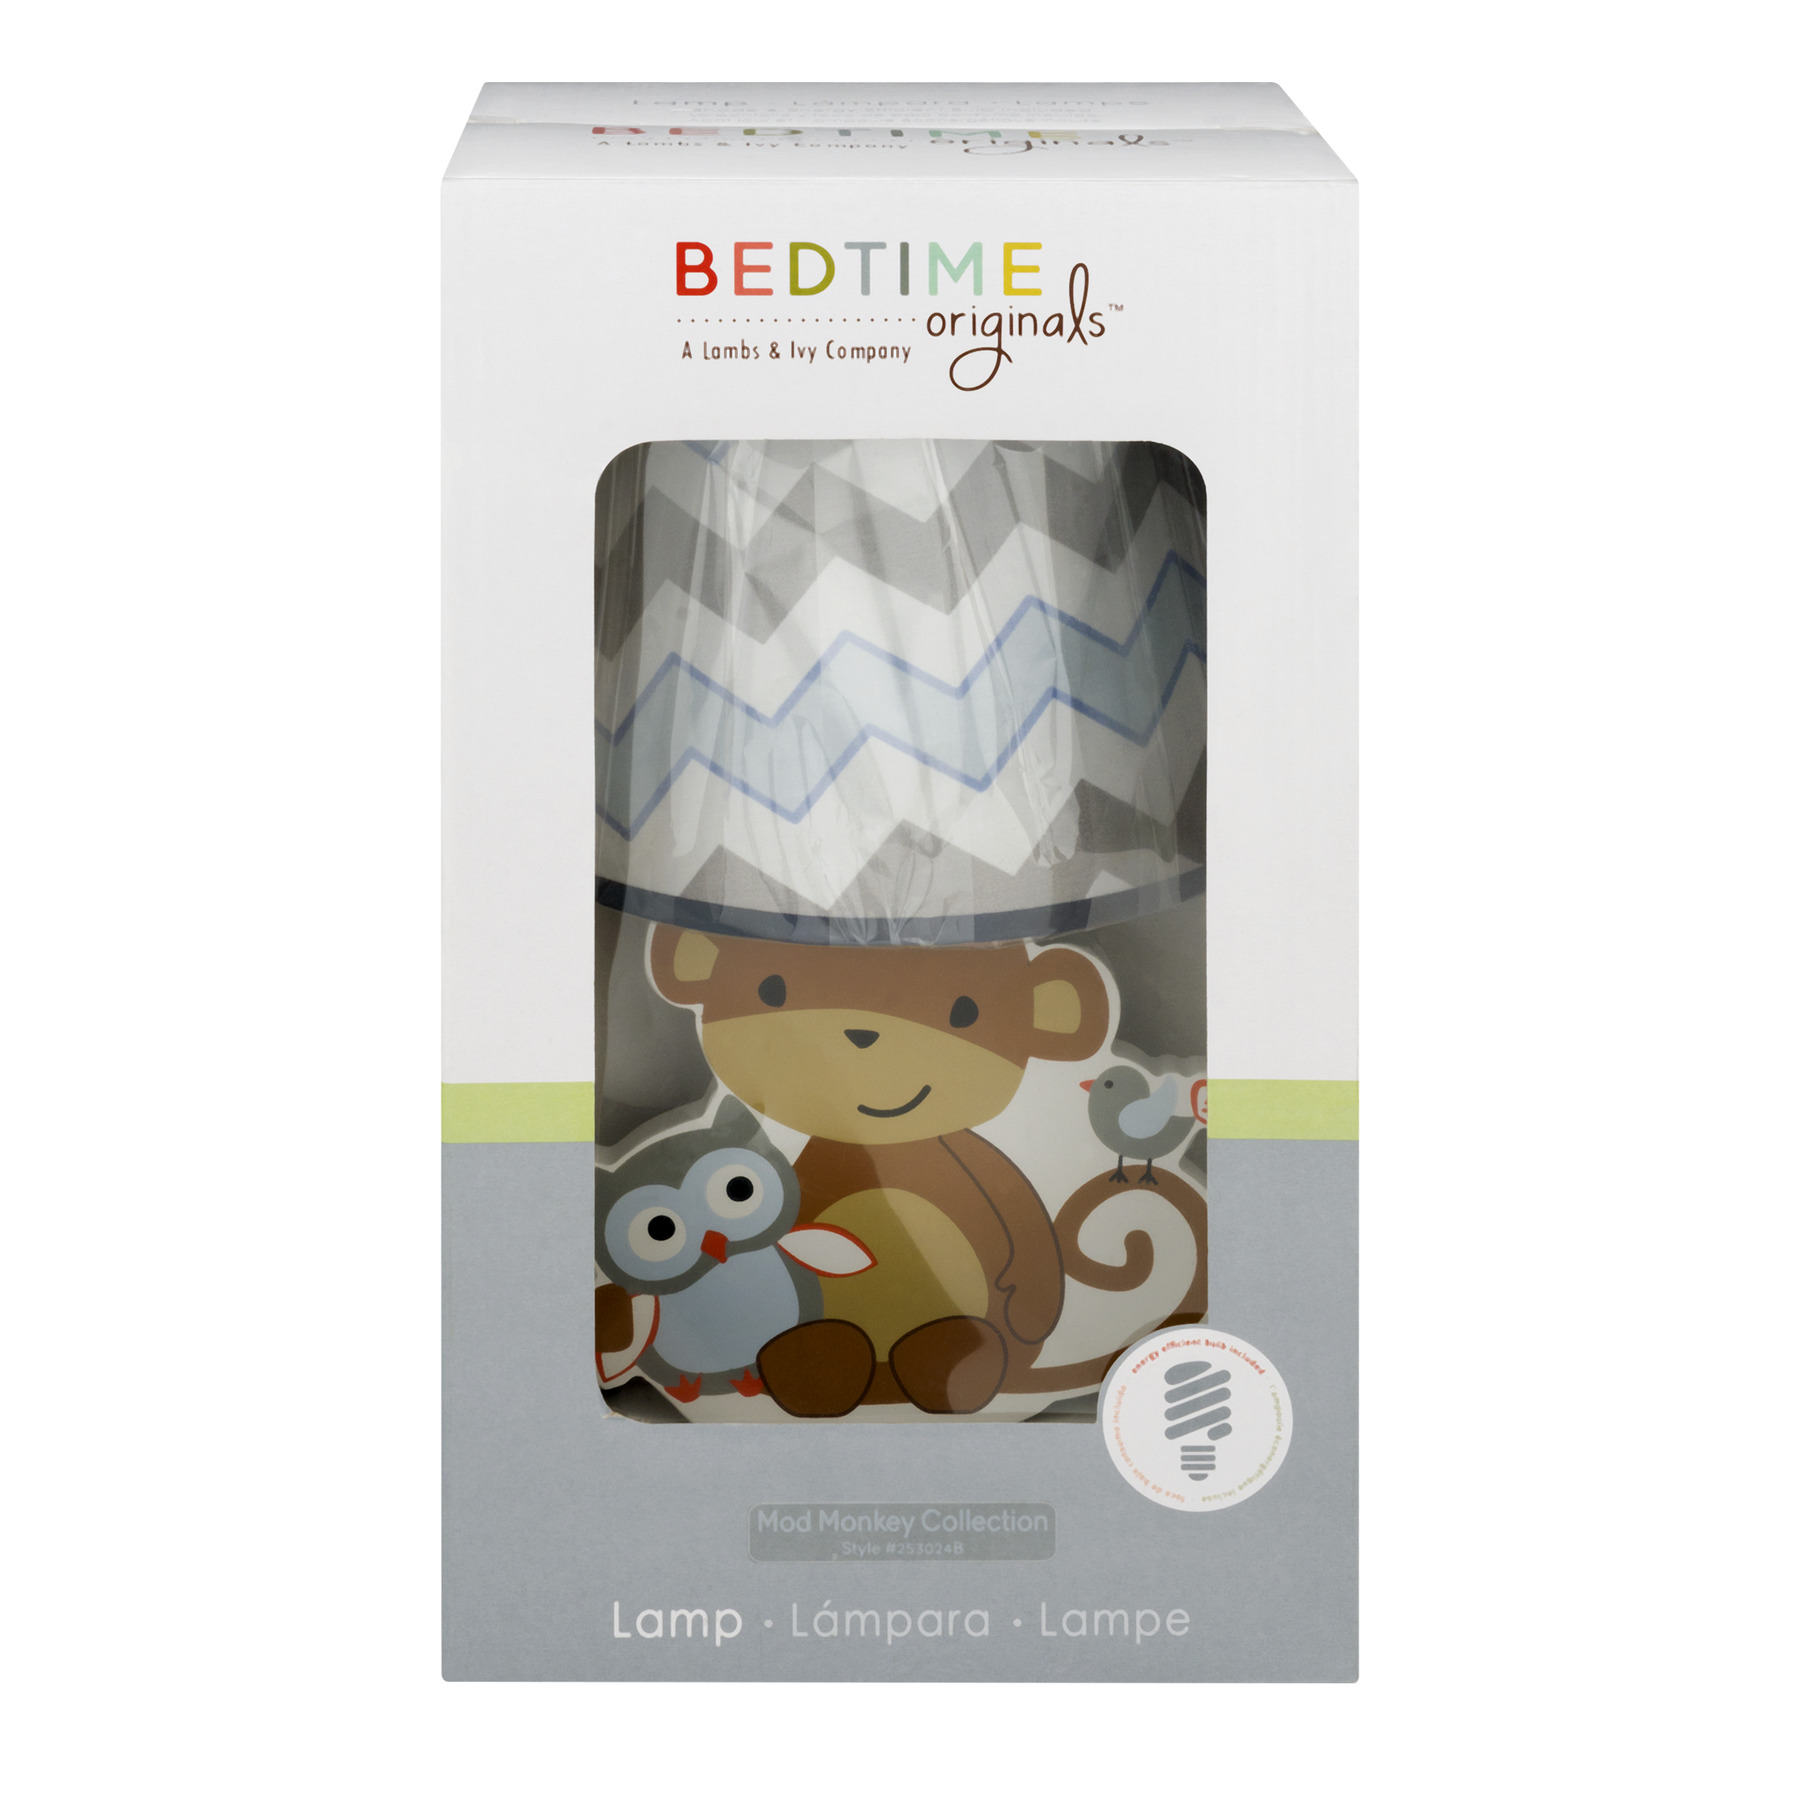 Bedtime Originals Lamp Mod Monkey Collection -1 CT1.0 CT